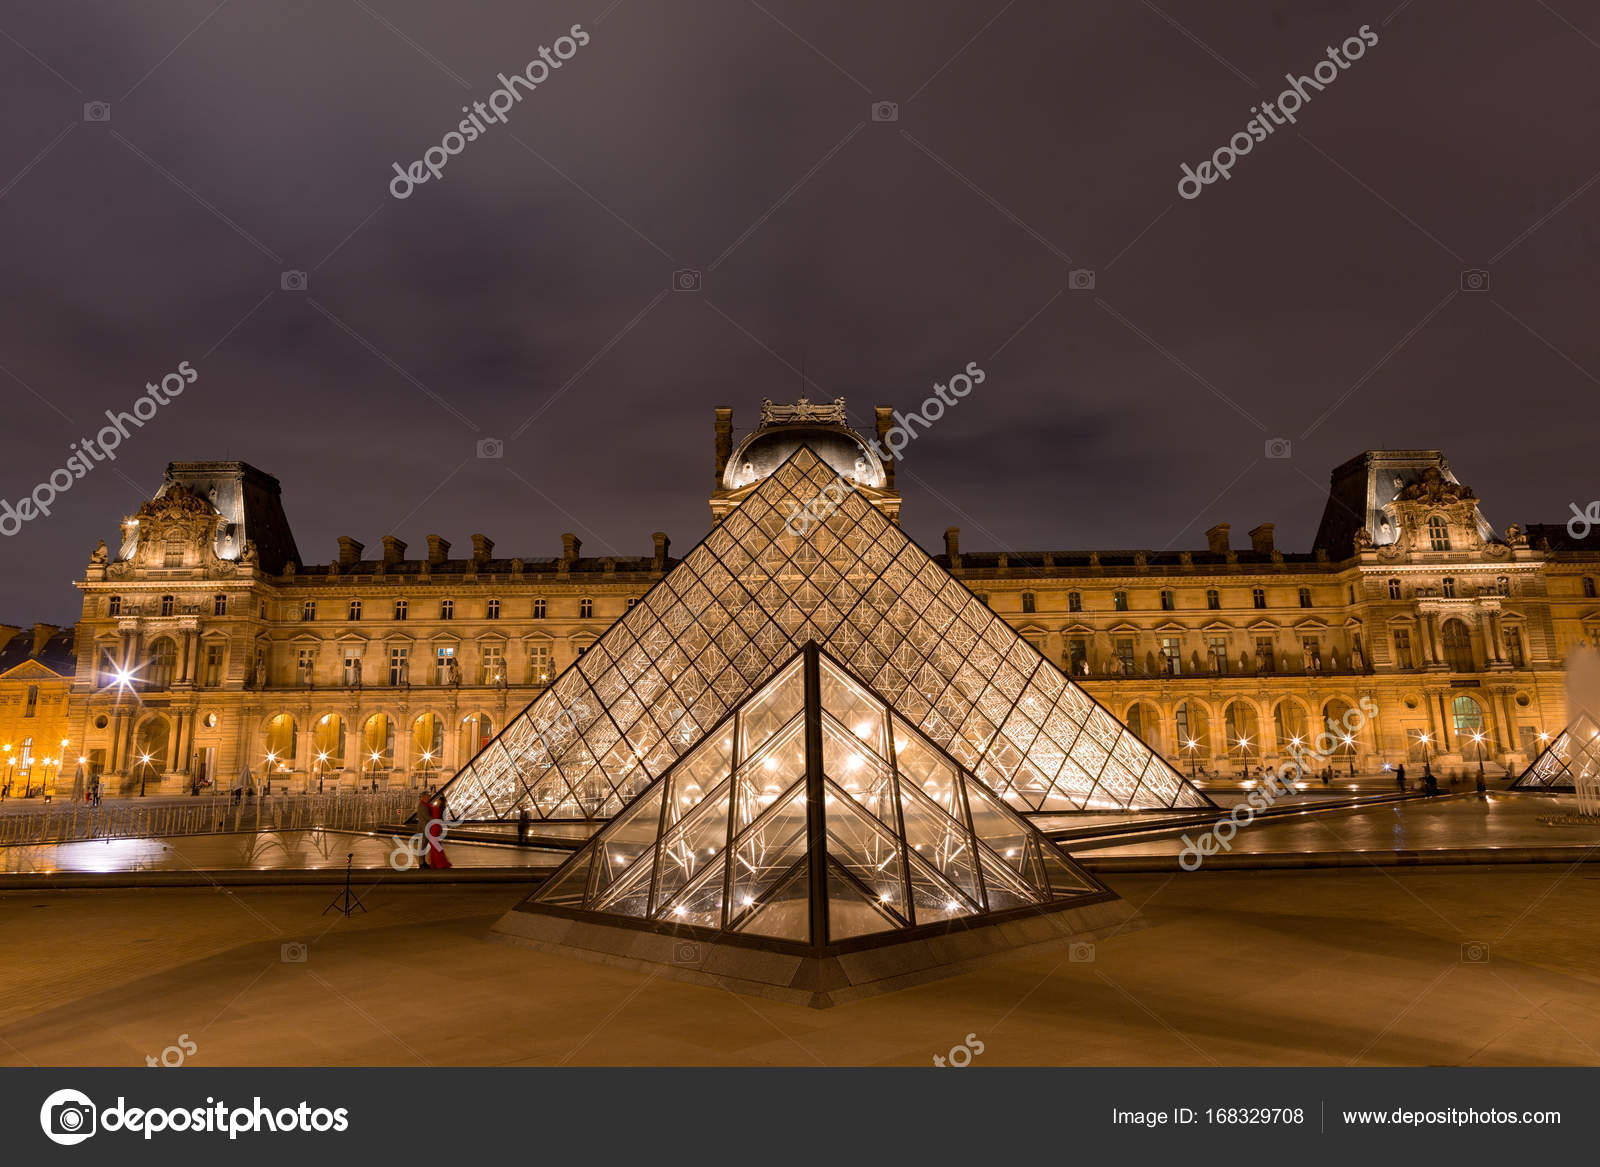 mus e du louvre avec la pyramide dans le cr puscule photo ditoriale aiisha 168329708. Black Bedroom Furniture Sets. Home Design Ideas